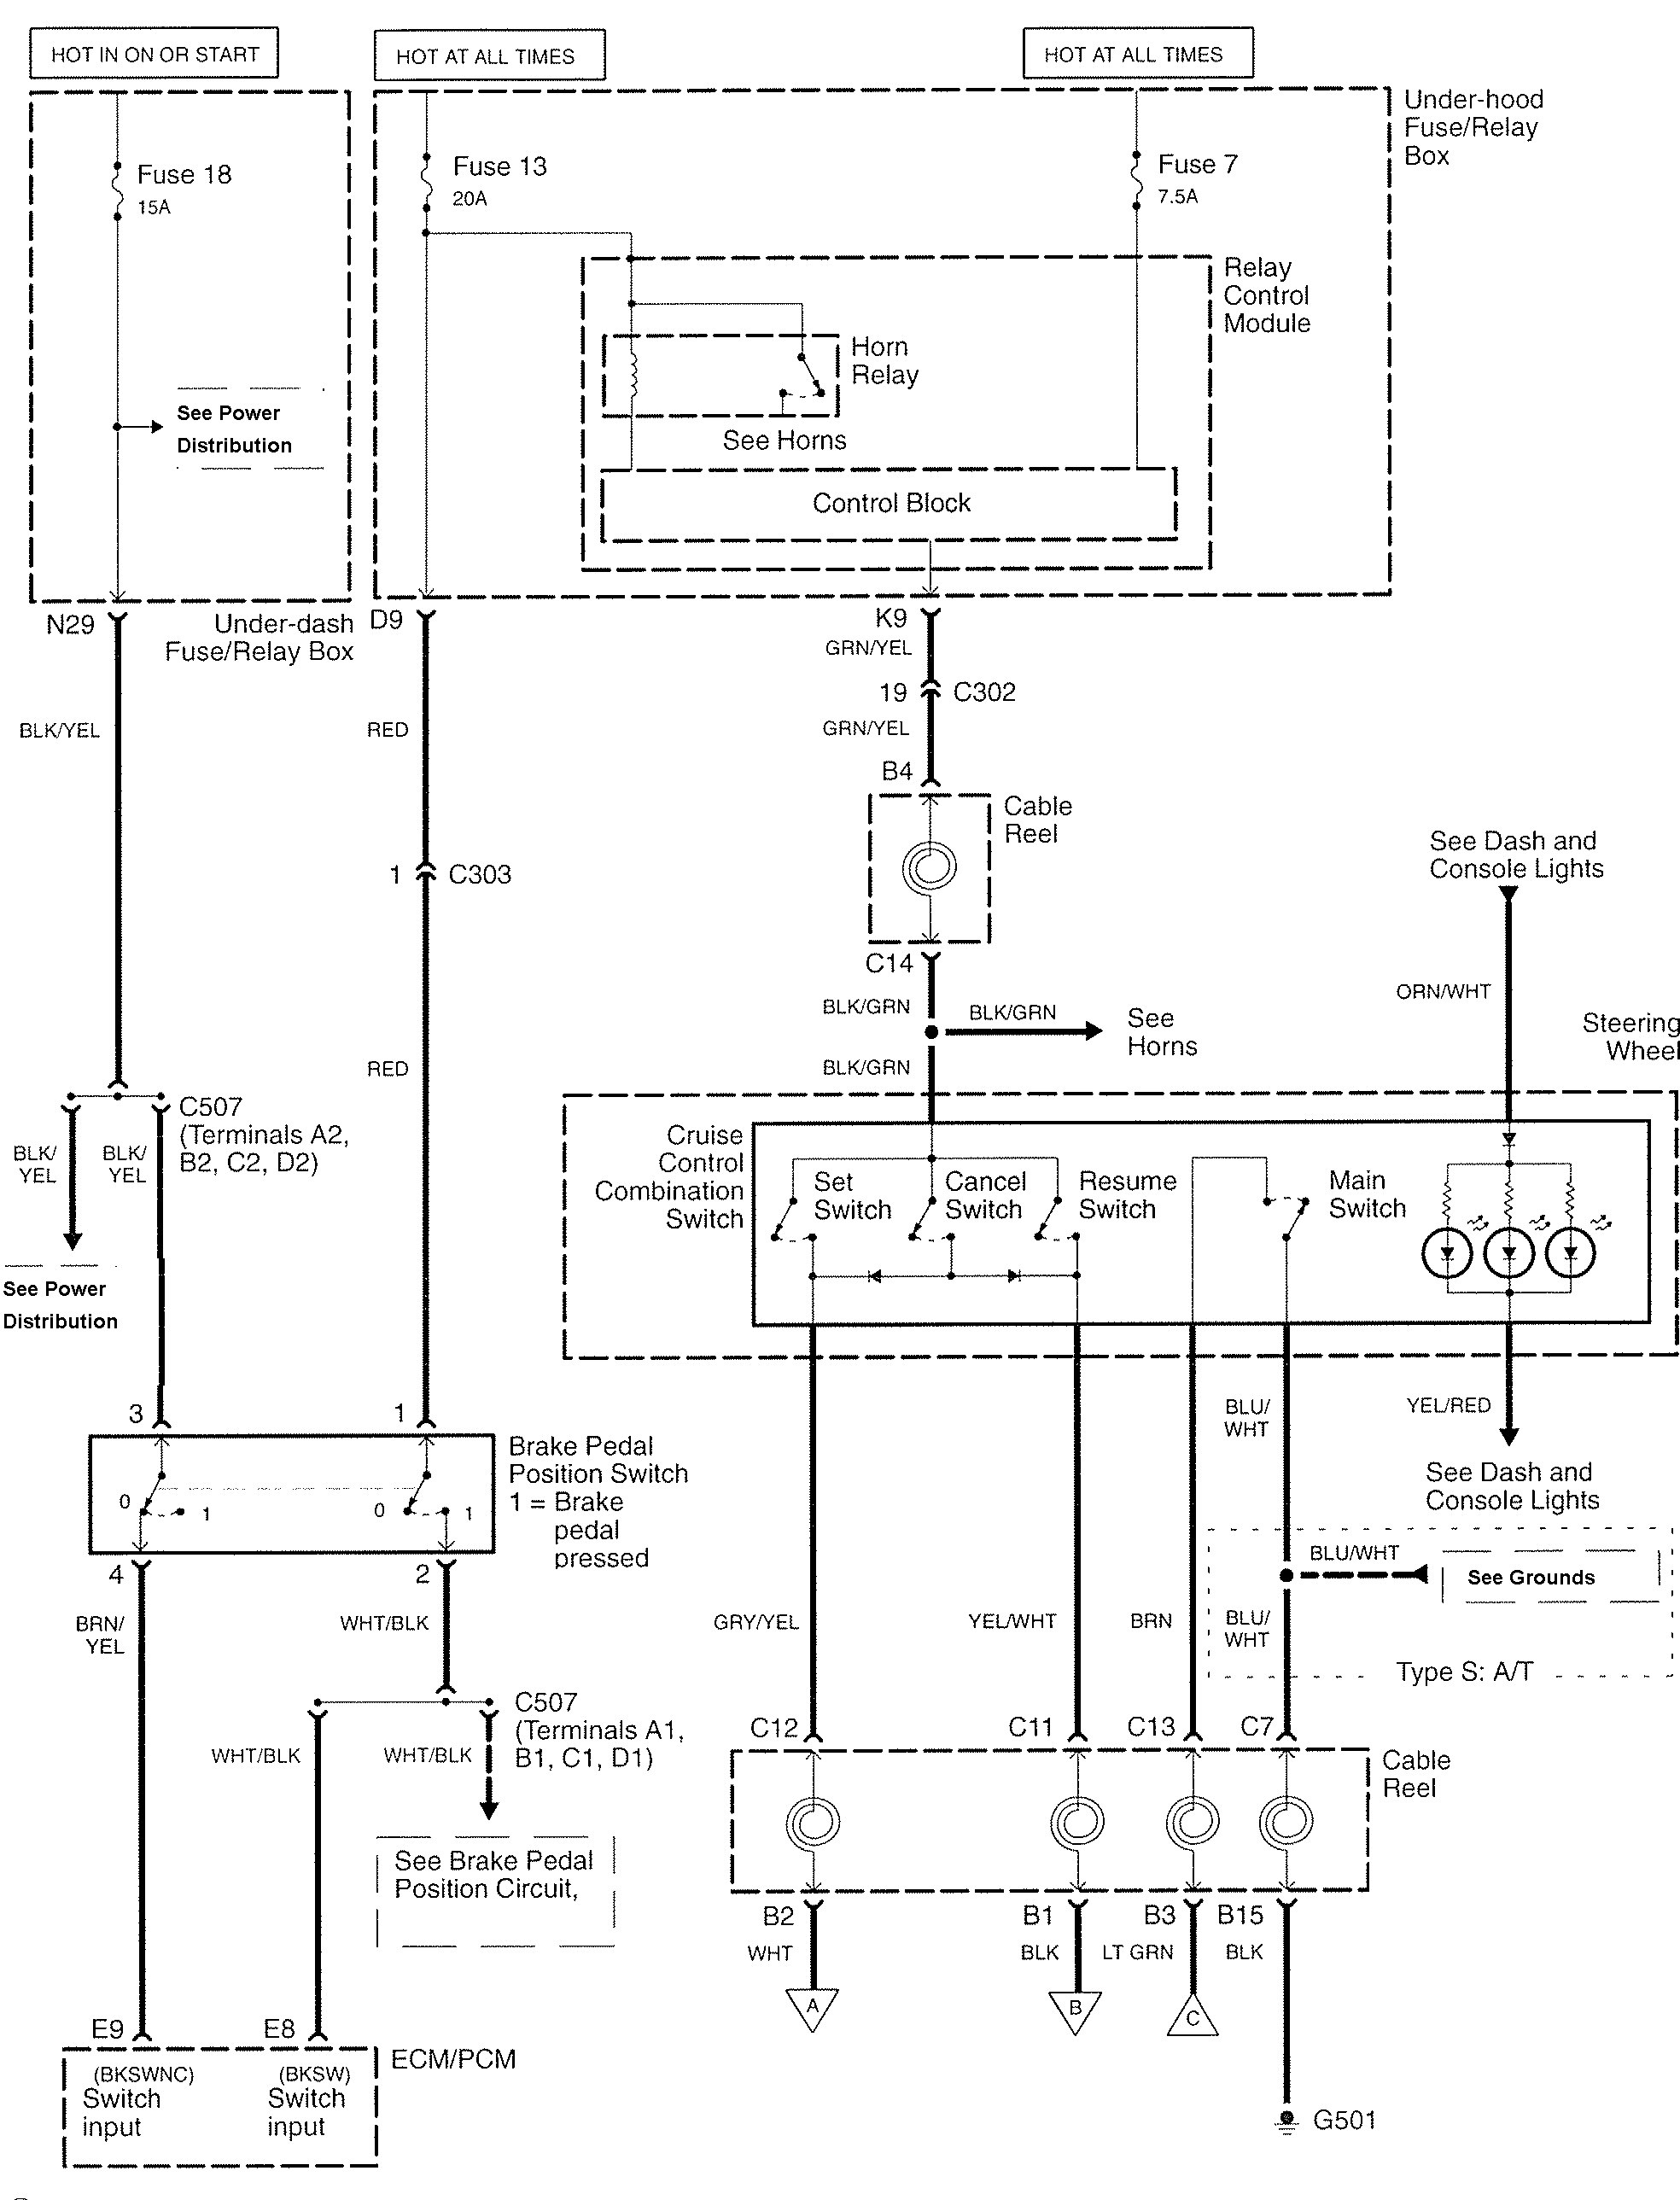 2005 acura tsx fuse box diagram pdf 2006 acura tsx fuse box diagram wiring  diagram elsalvadorla